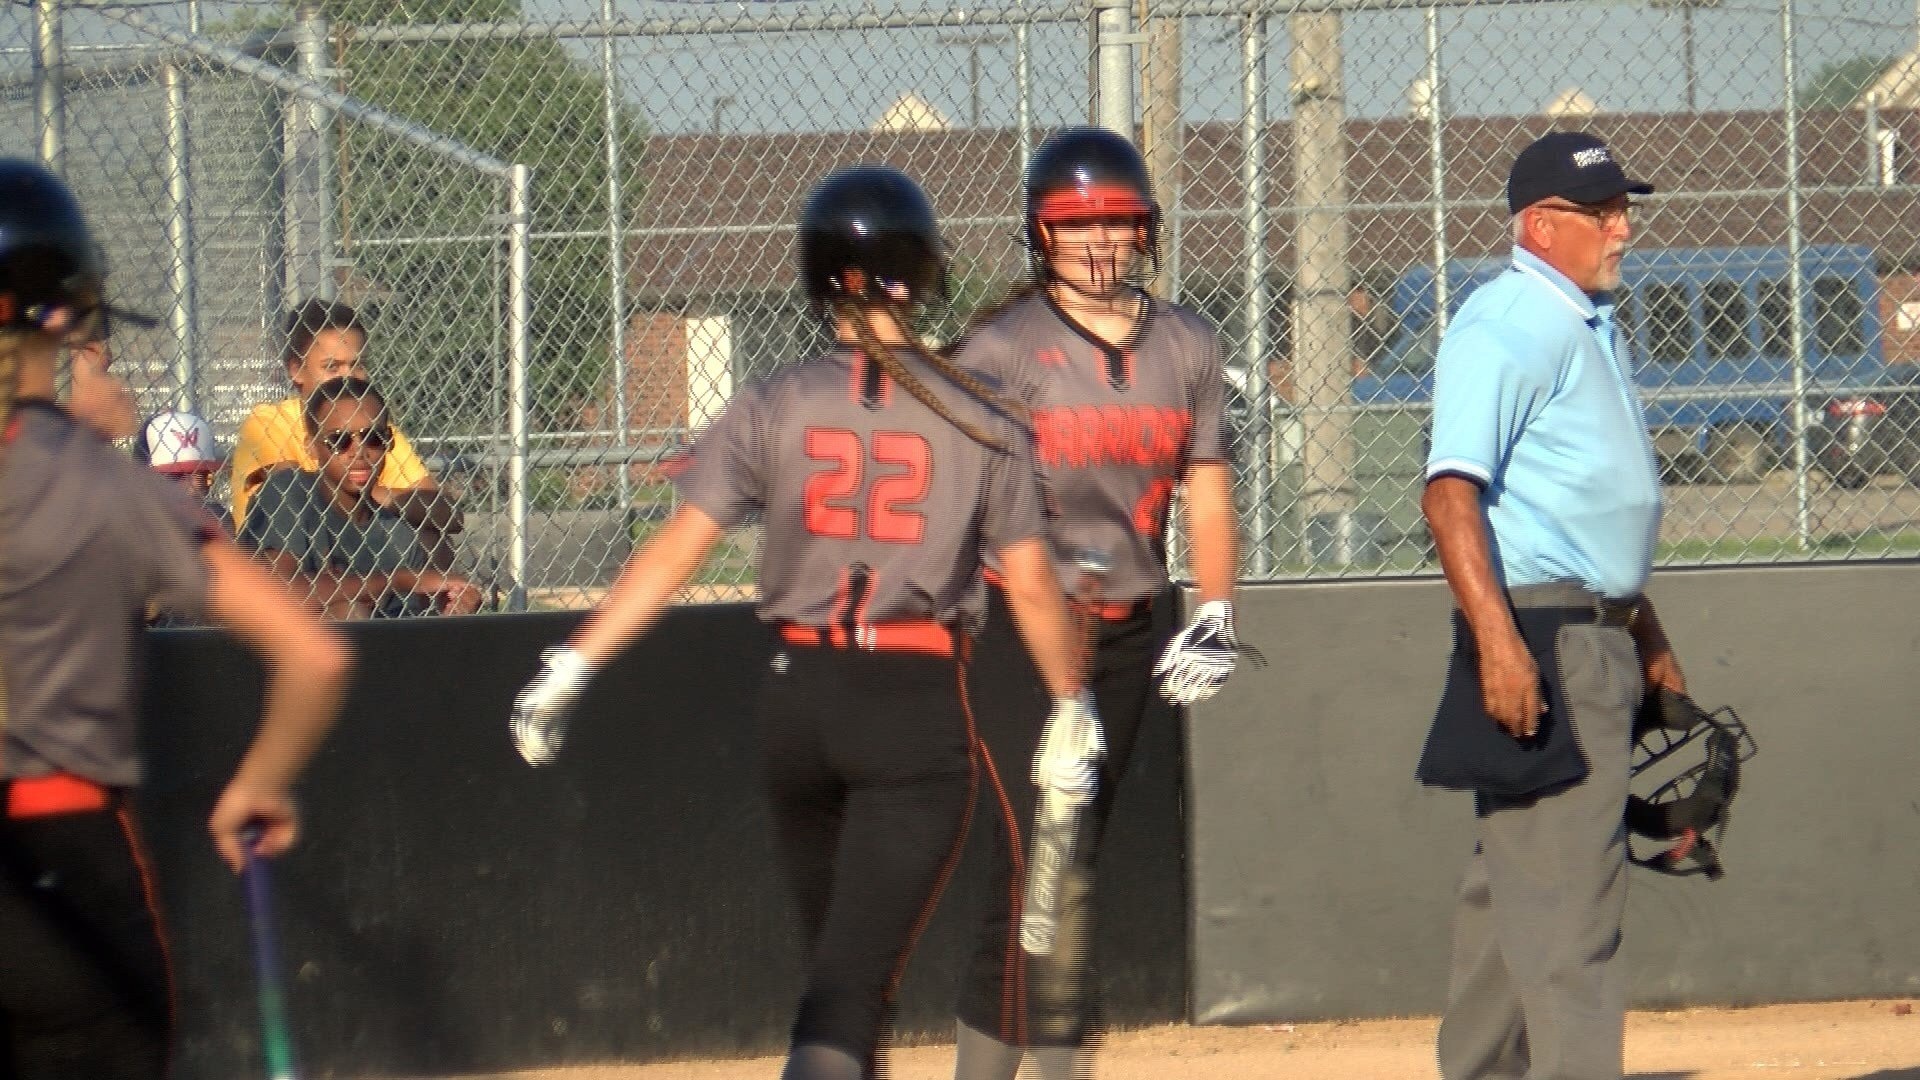 Sergeant Bluff-Luton beat Le Mars on Saturday, 12-3.